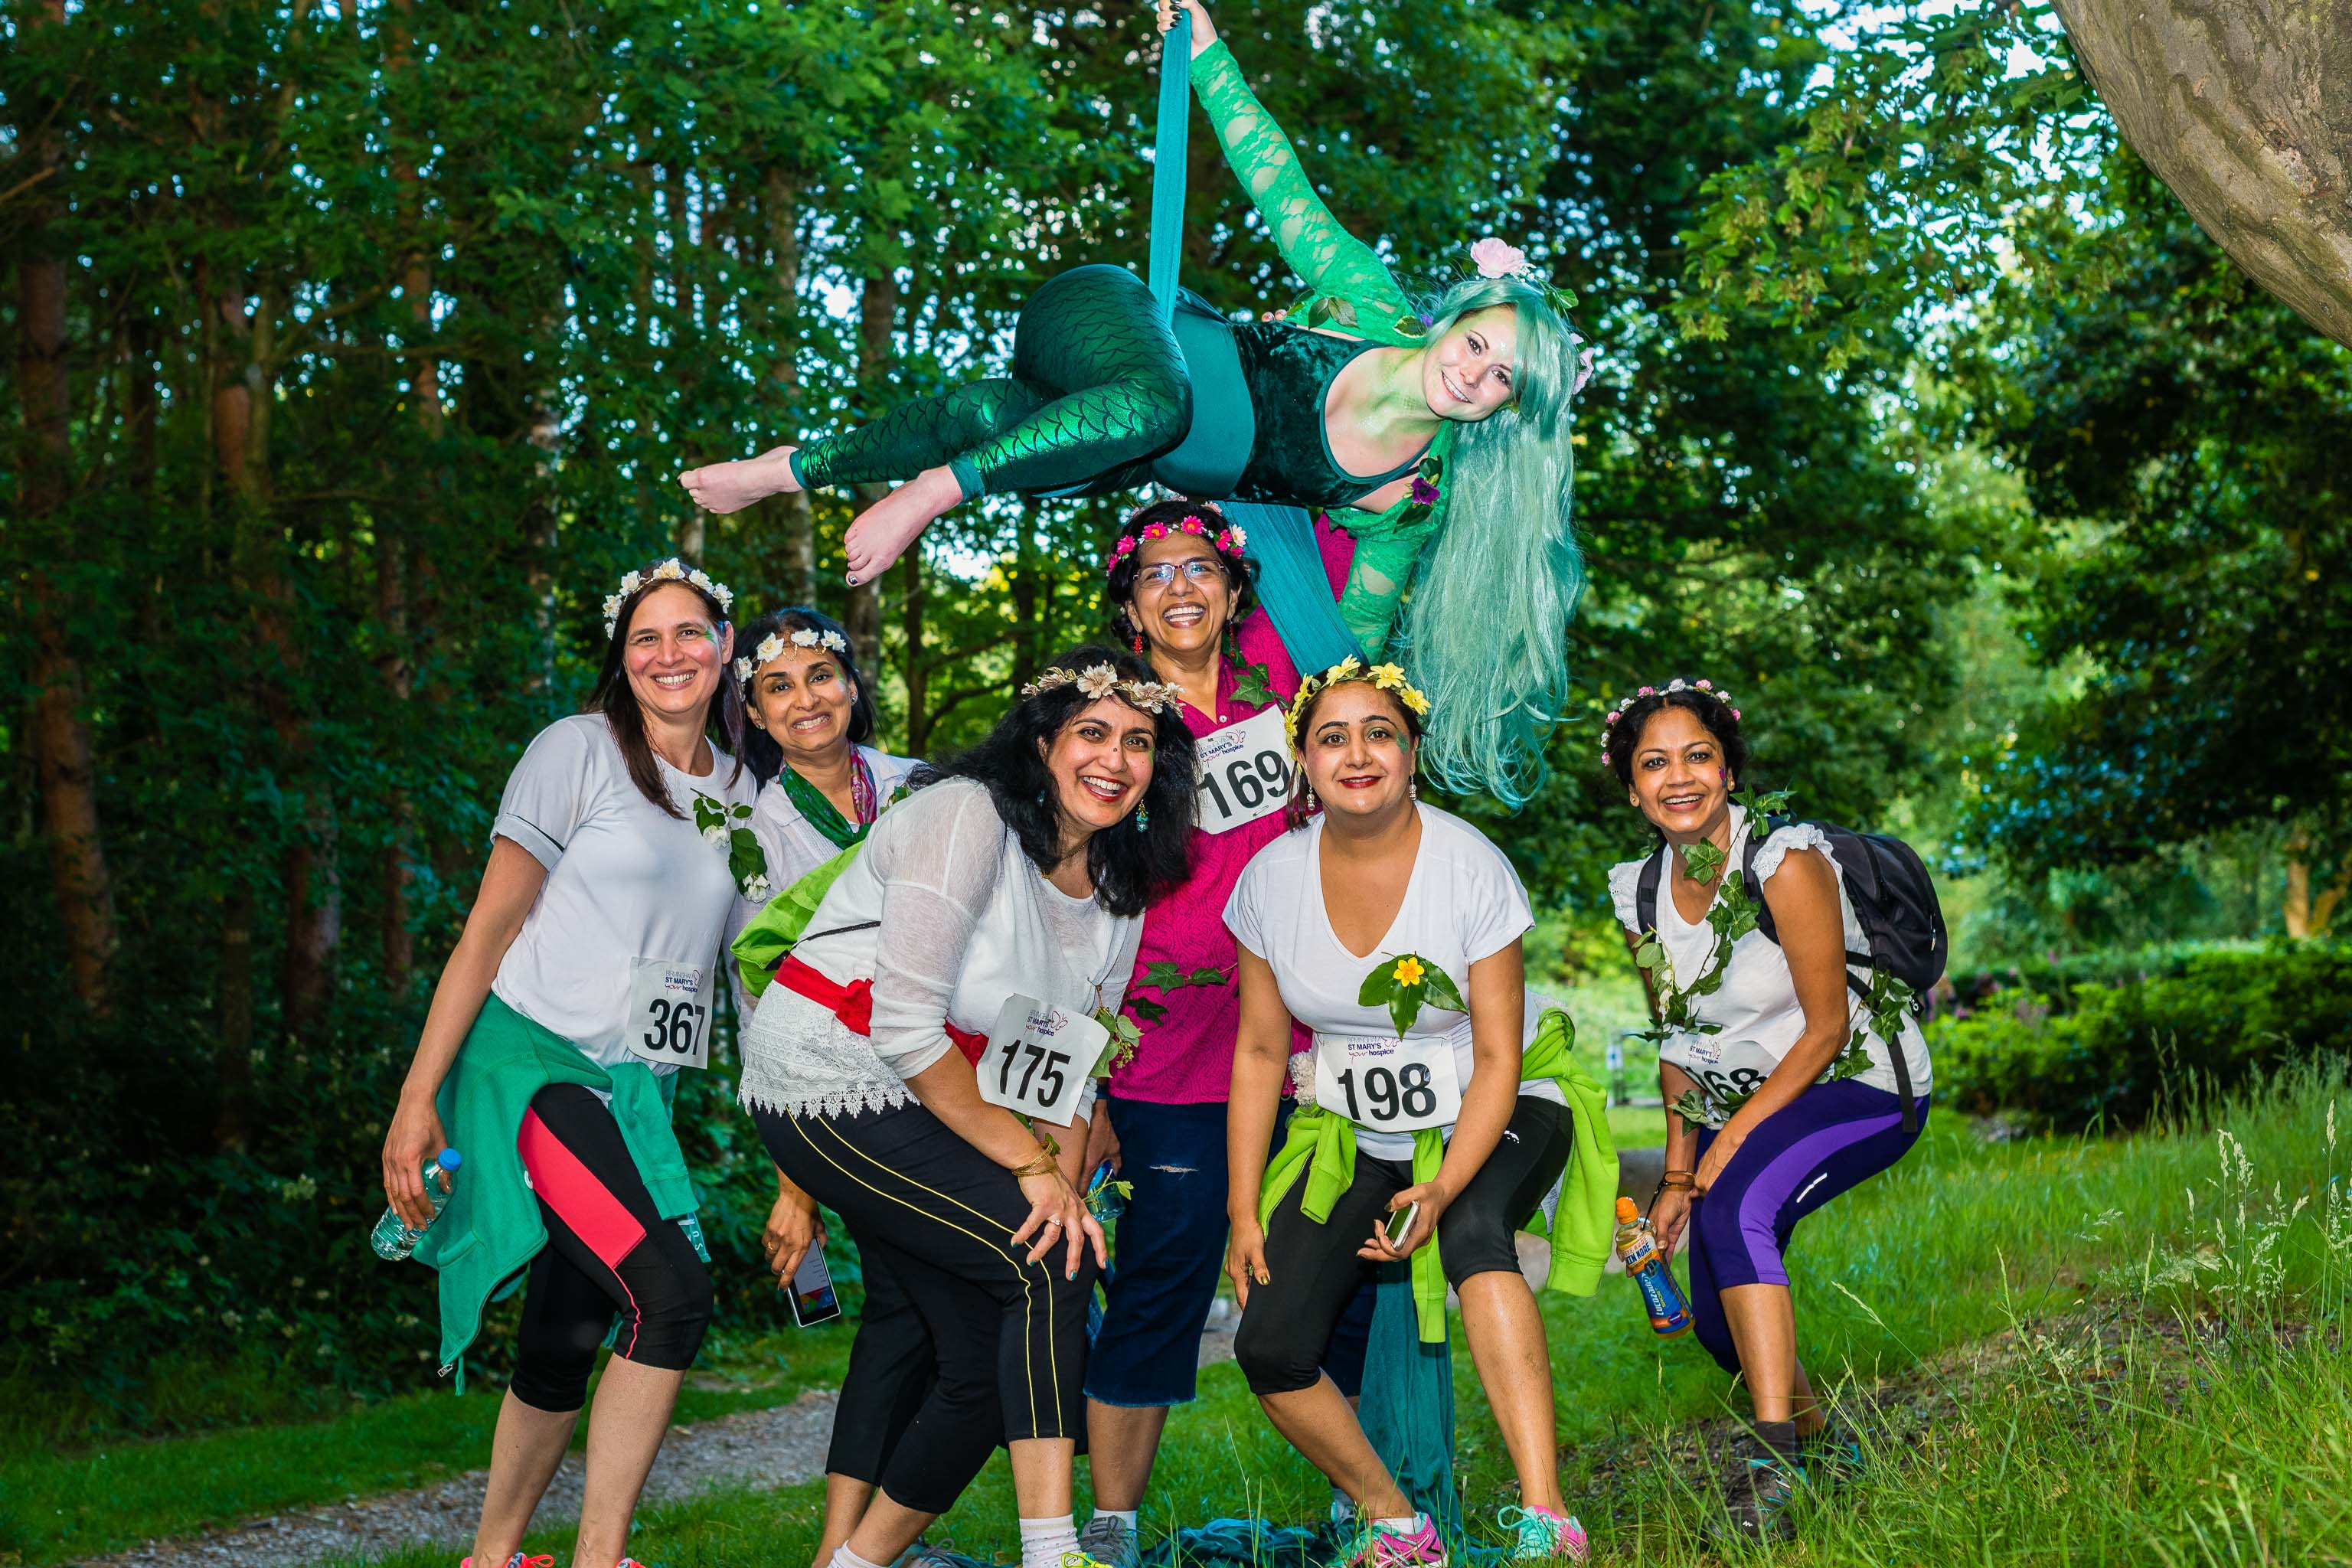 Magical Midsummer walk to raise vital funds for local hospice